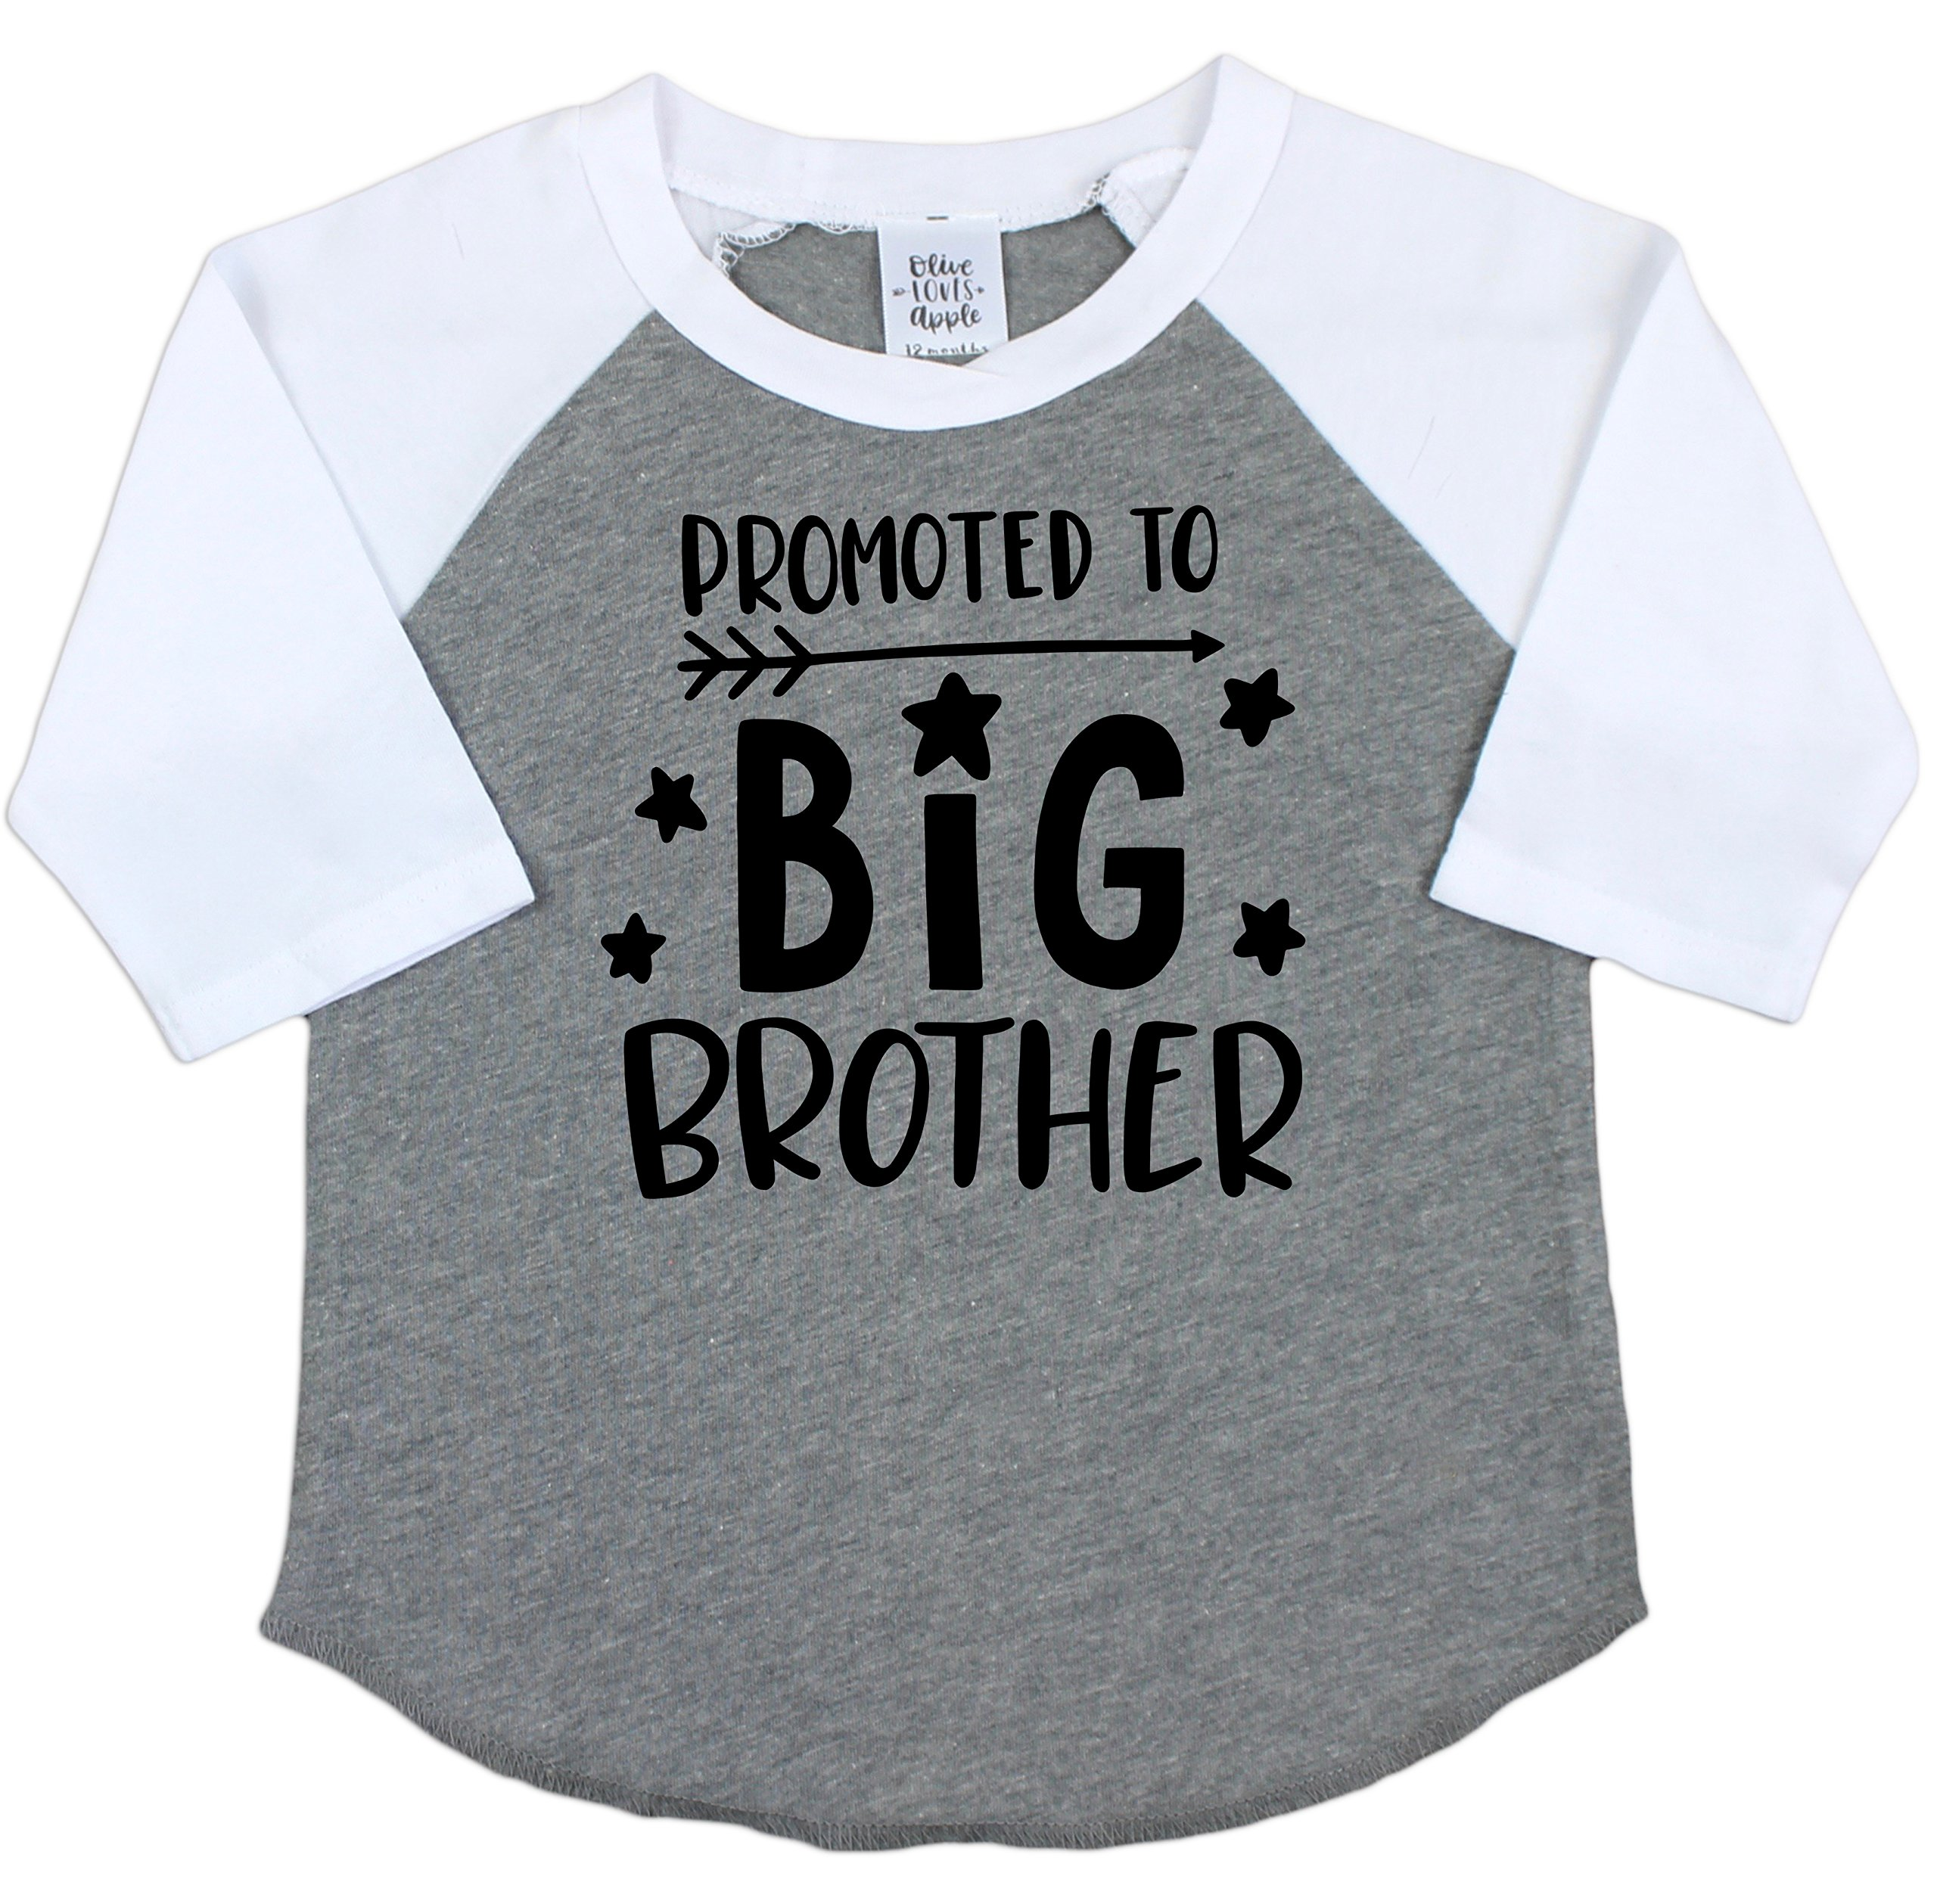 Olive Loves Apple Promoted to Big Brother Gender Reveal Shirt for Sibling Brother Big Brother Shirt